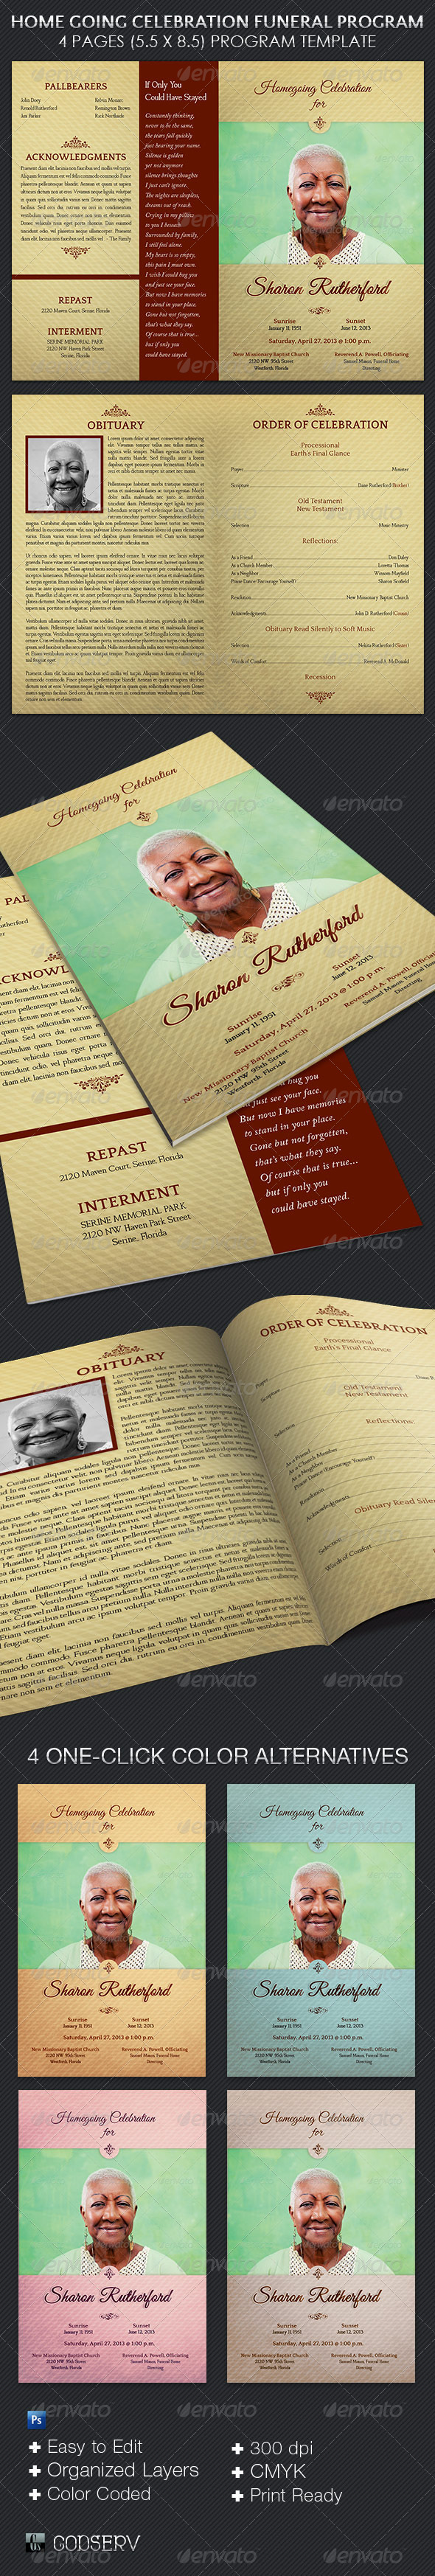 GraphicRiver Home Going Funeral Program Template 5543591